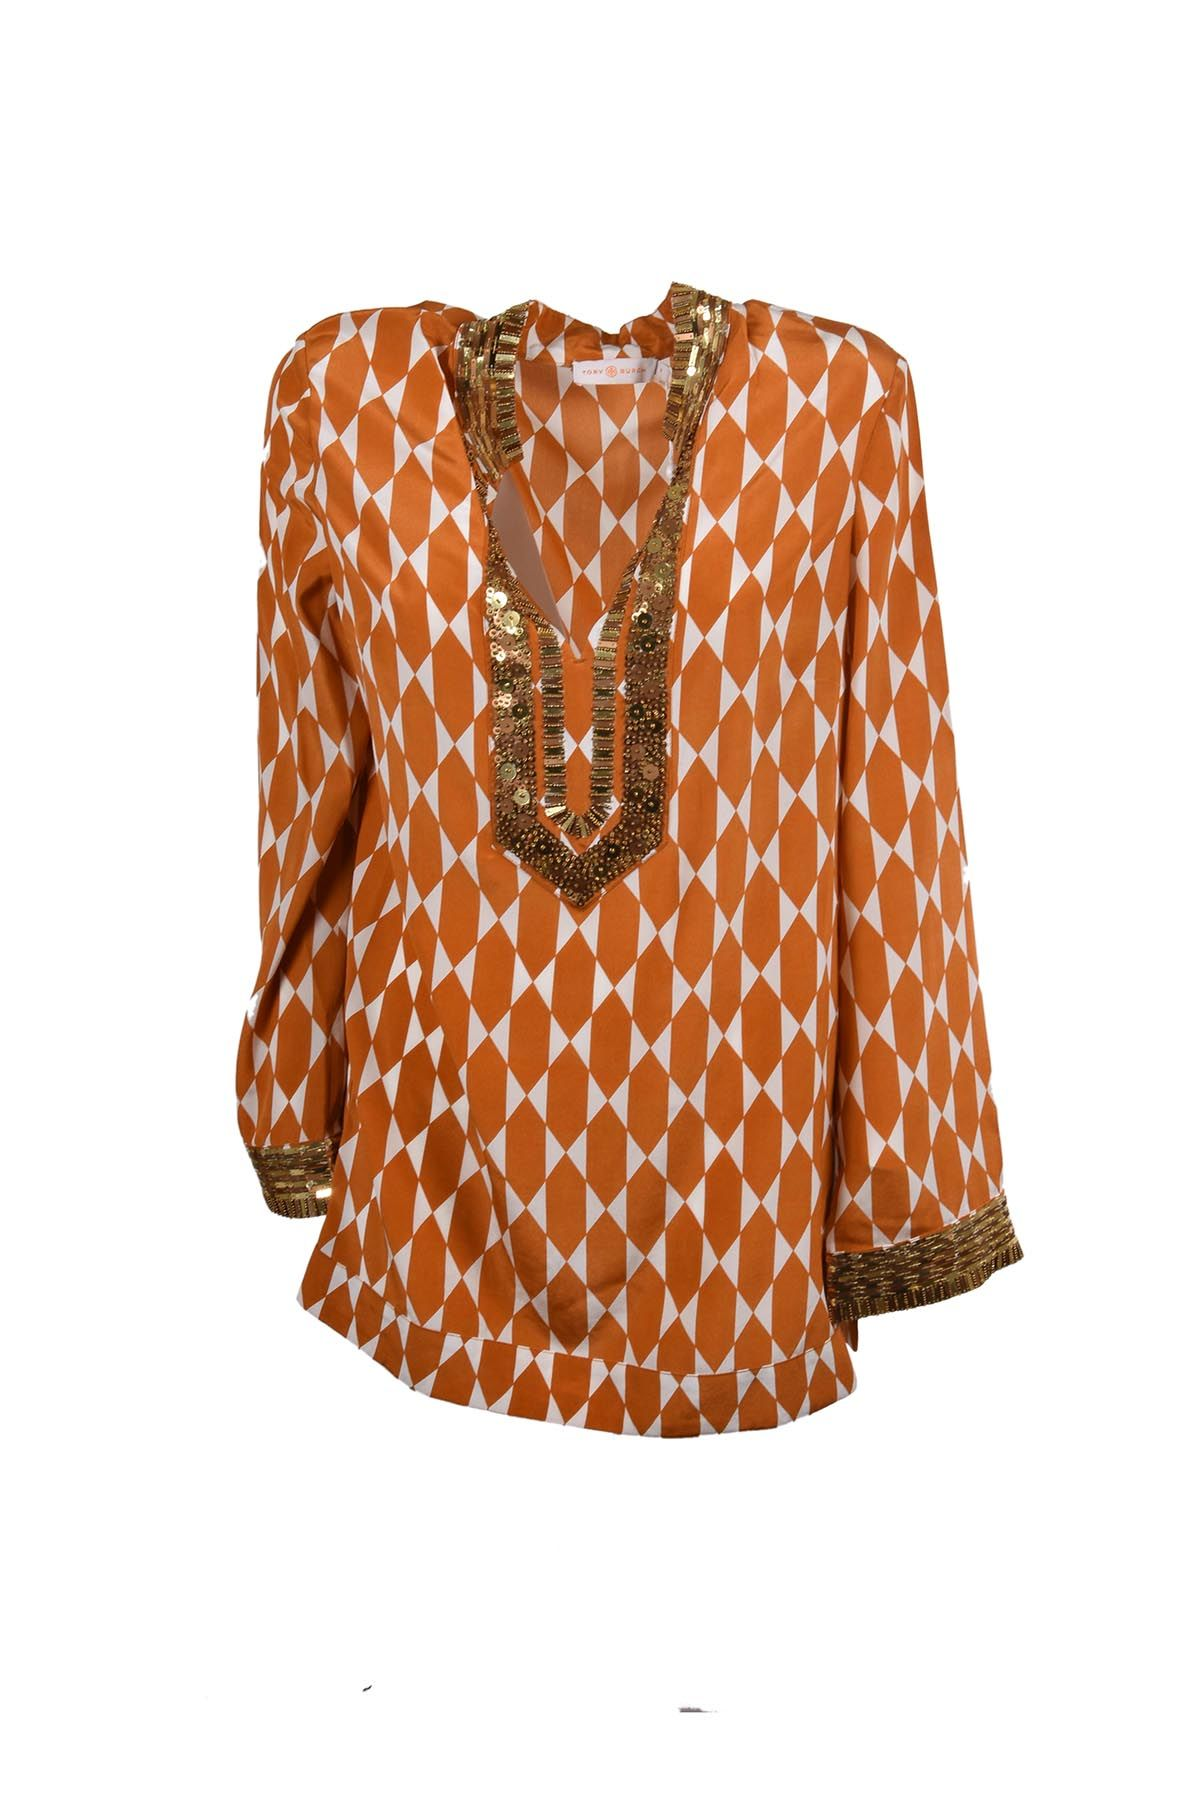 Tory Burch Embellished Blouse